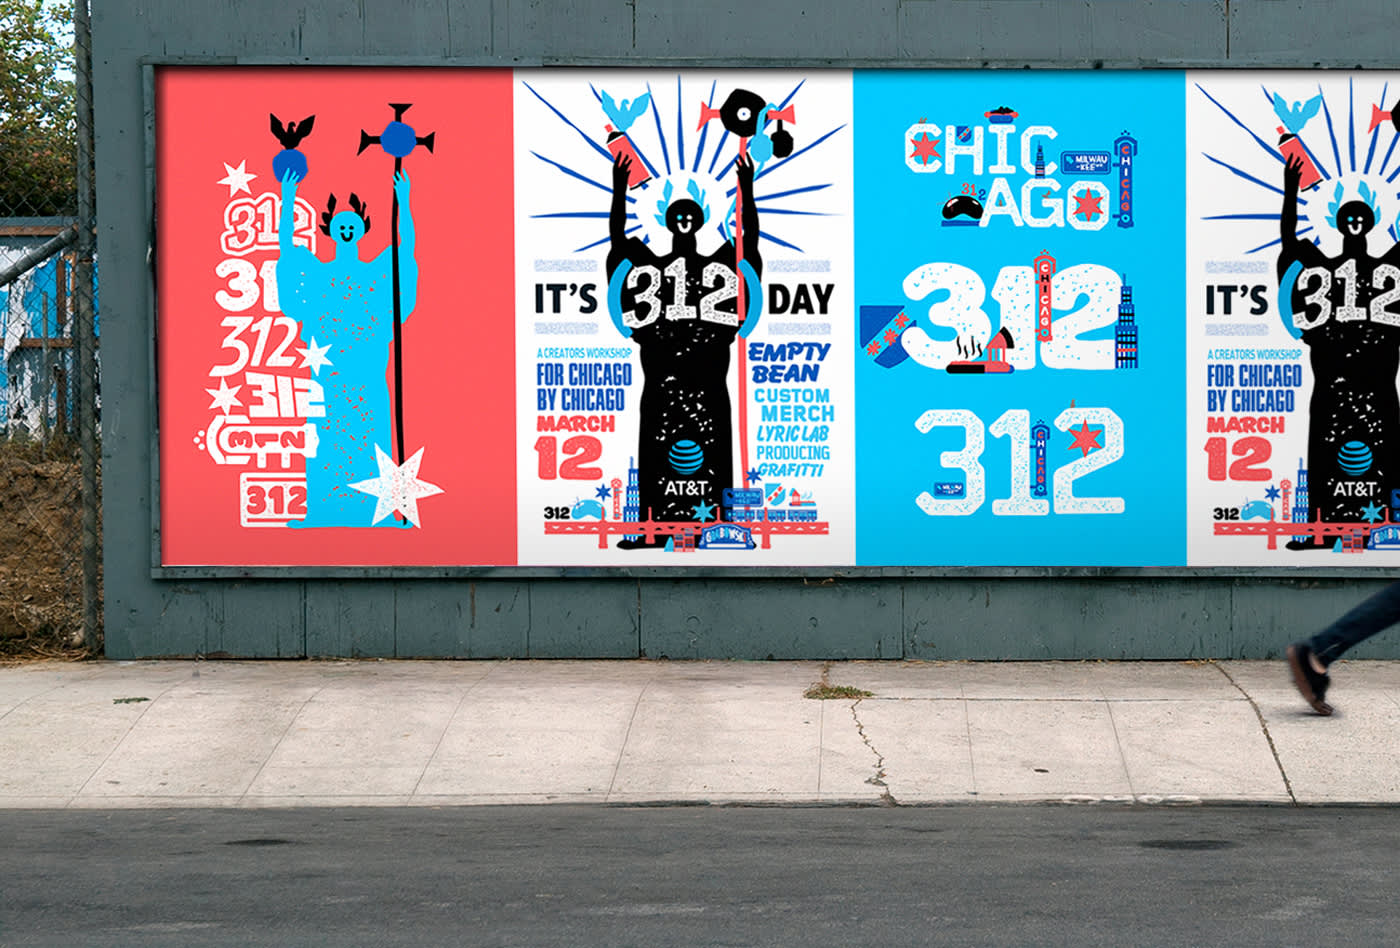 AT&T Codes of Culture Campaign